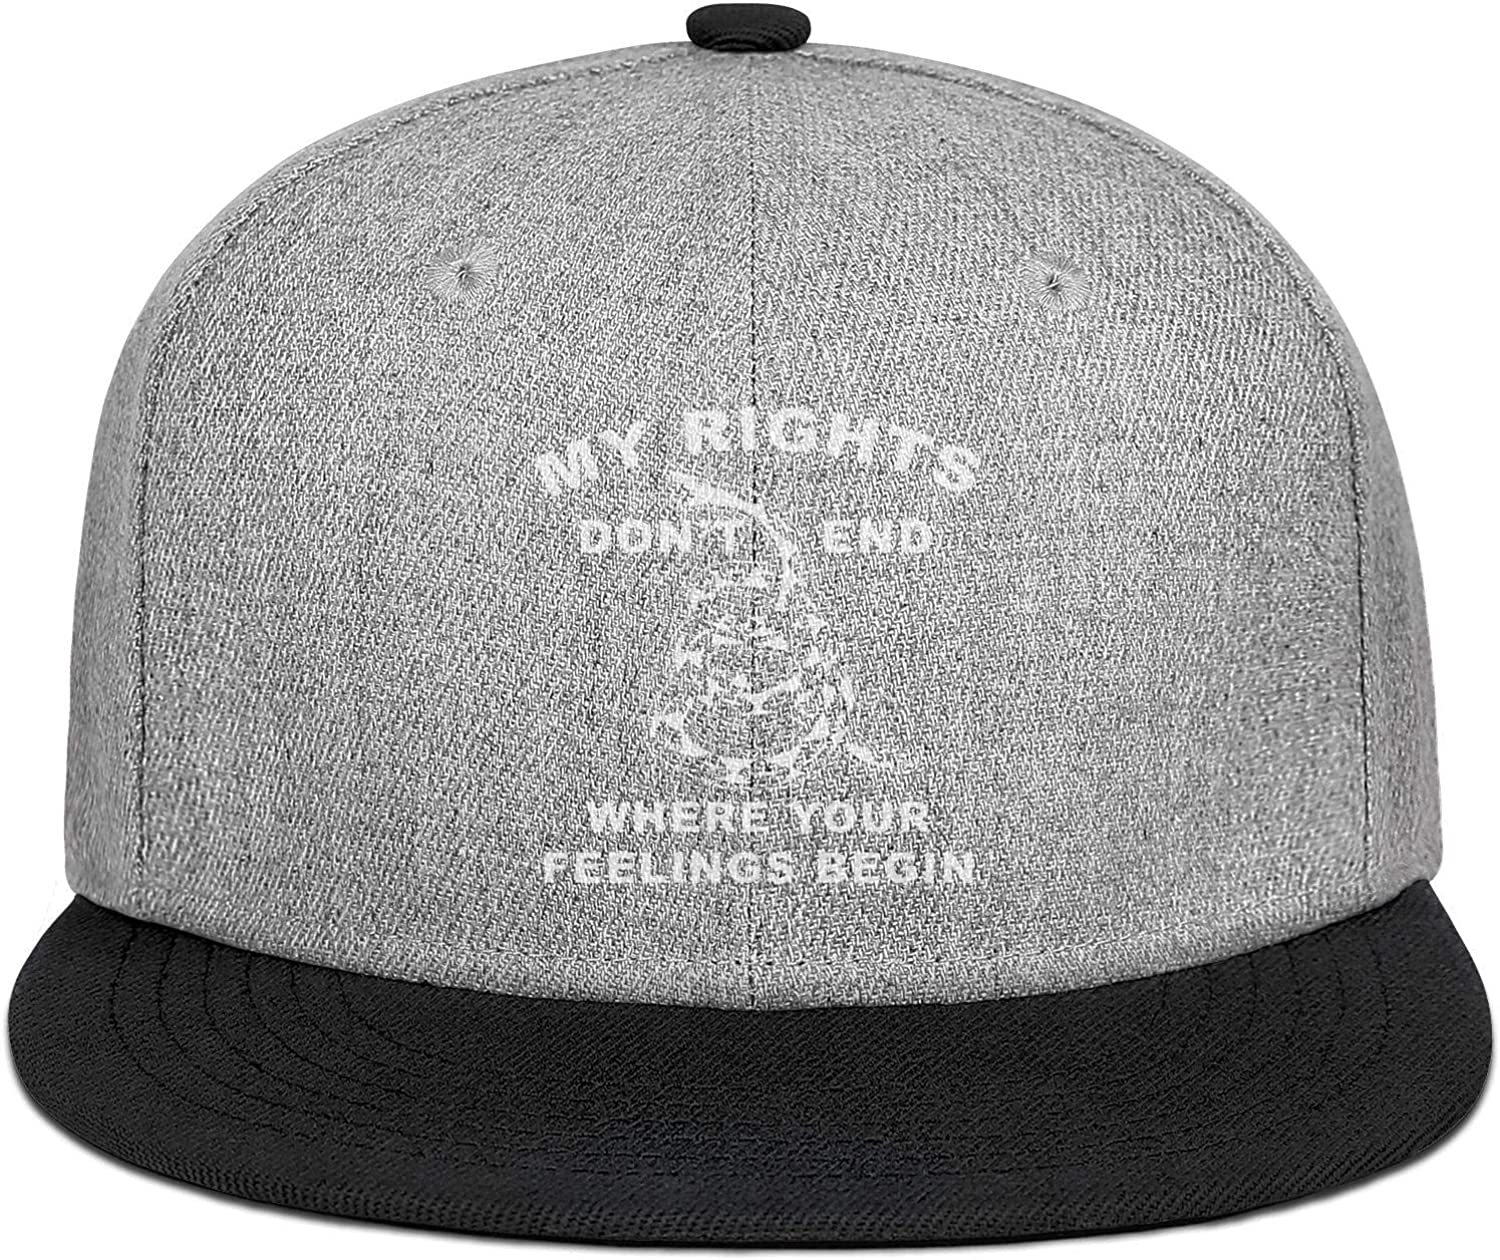 My Rights Dont End Where Your Feelings Begin Snake Men Womens Wool Ball Cap Adjustable Snapback Beach Hat